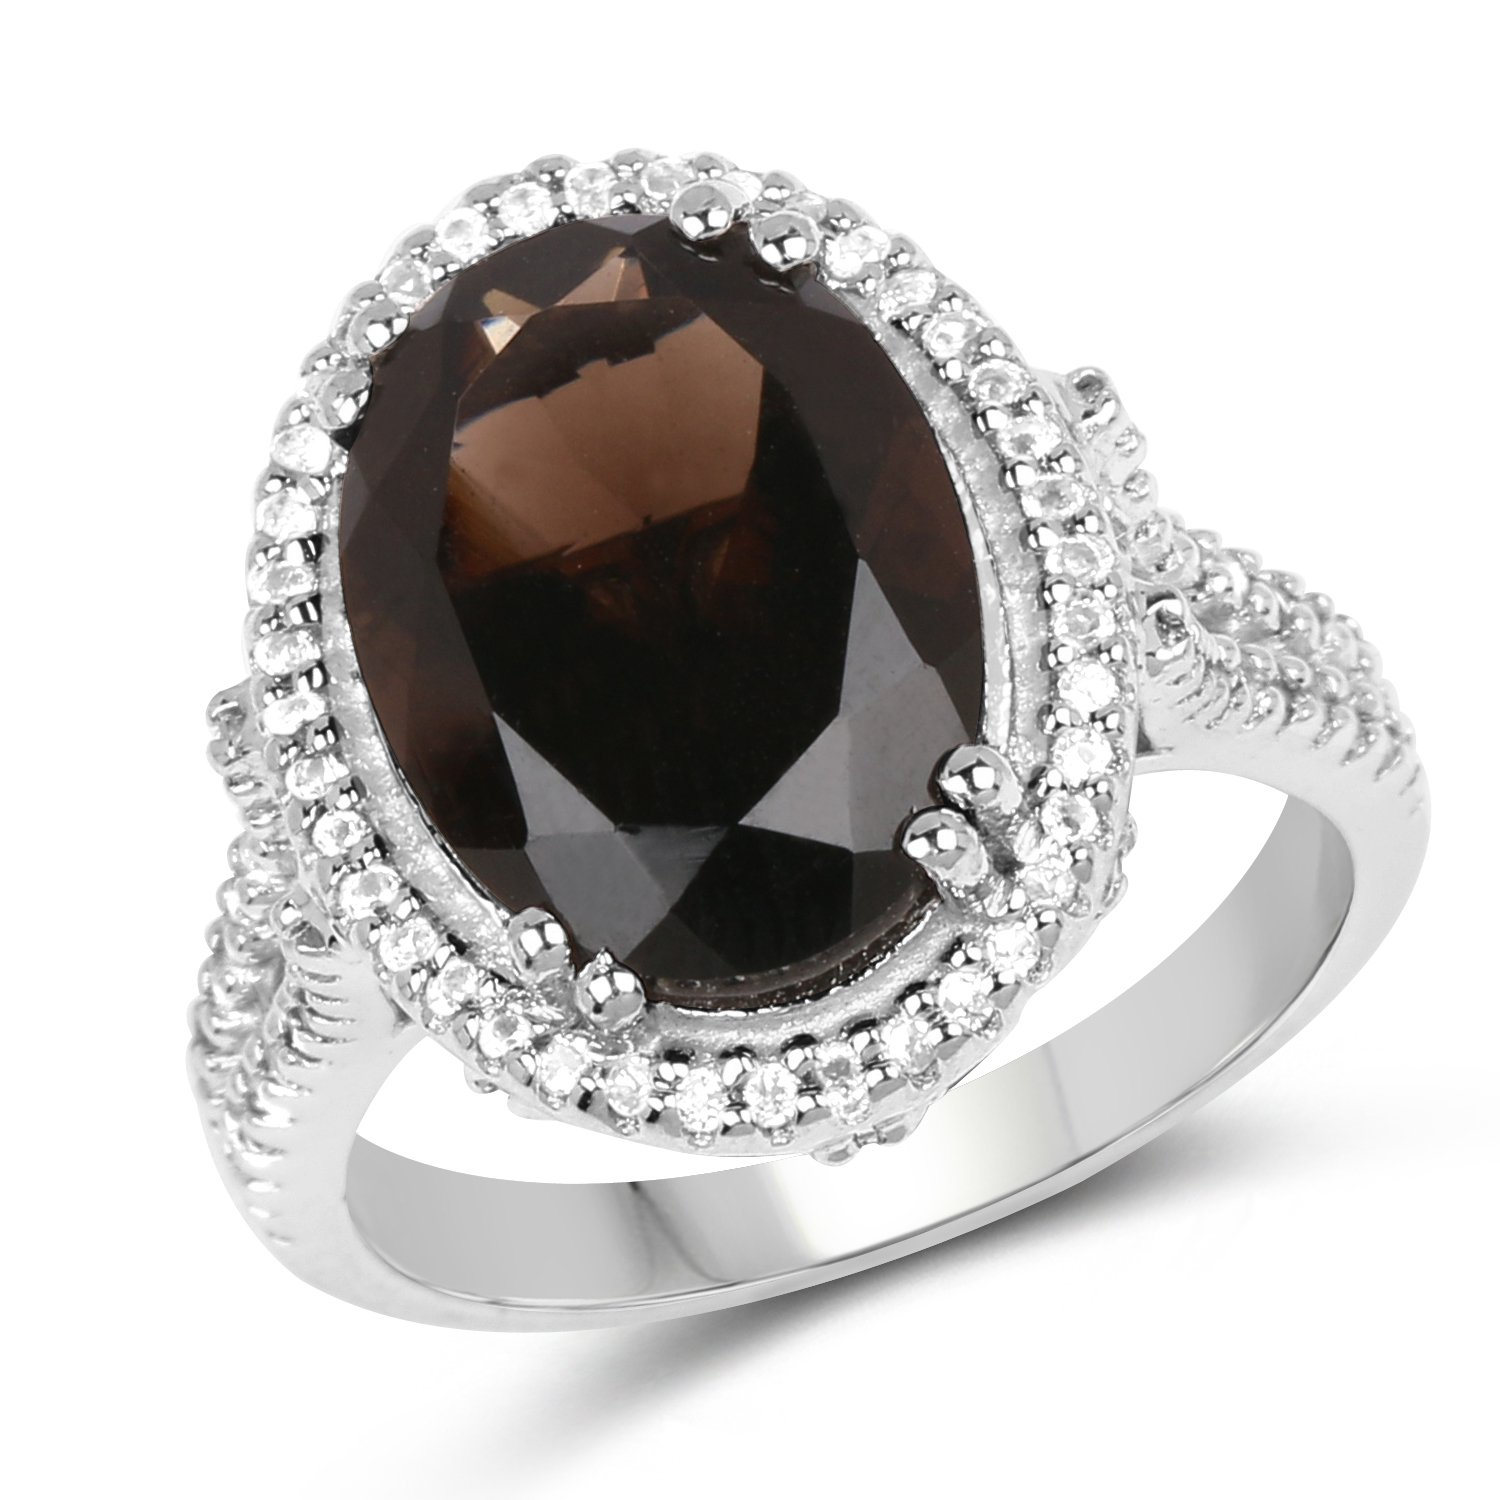 14x10MM Oval Smoky Quartz Ring in .925 Sterling Silver, Real Genuine Smoky Quartz Mother's Day Gift (5.45ctw)